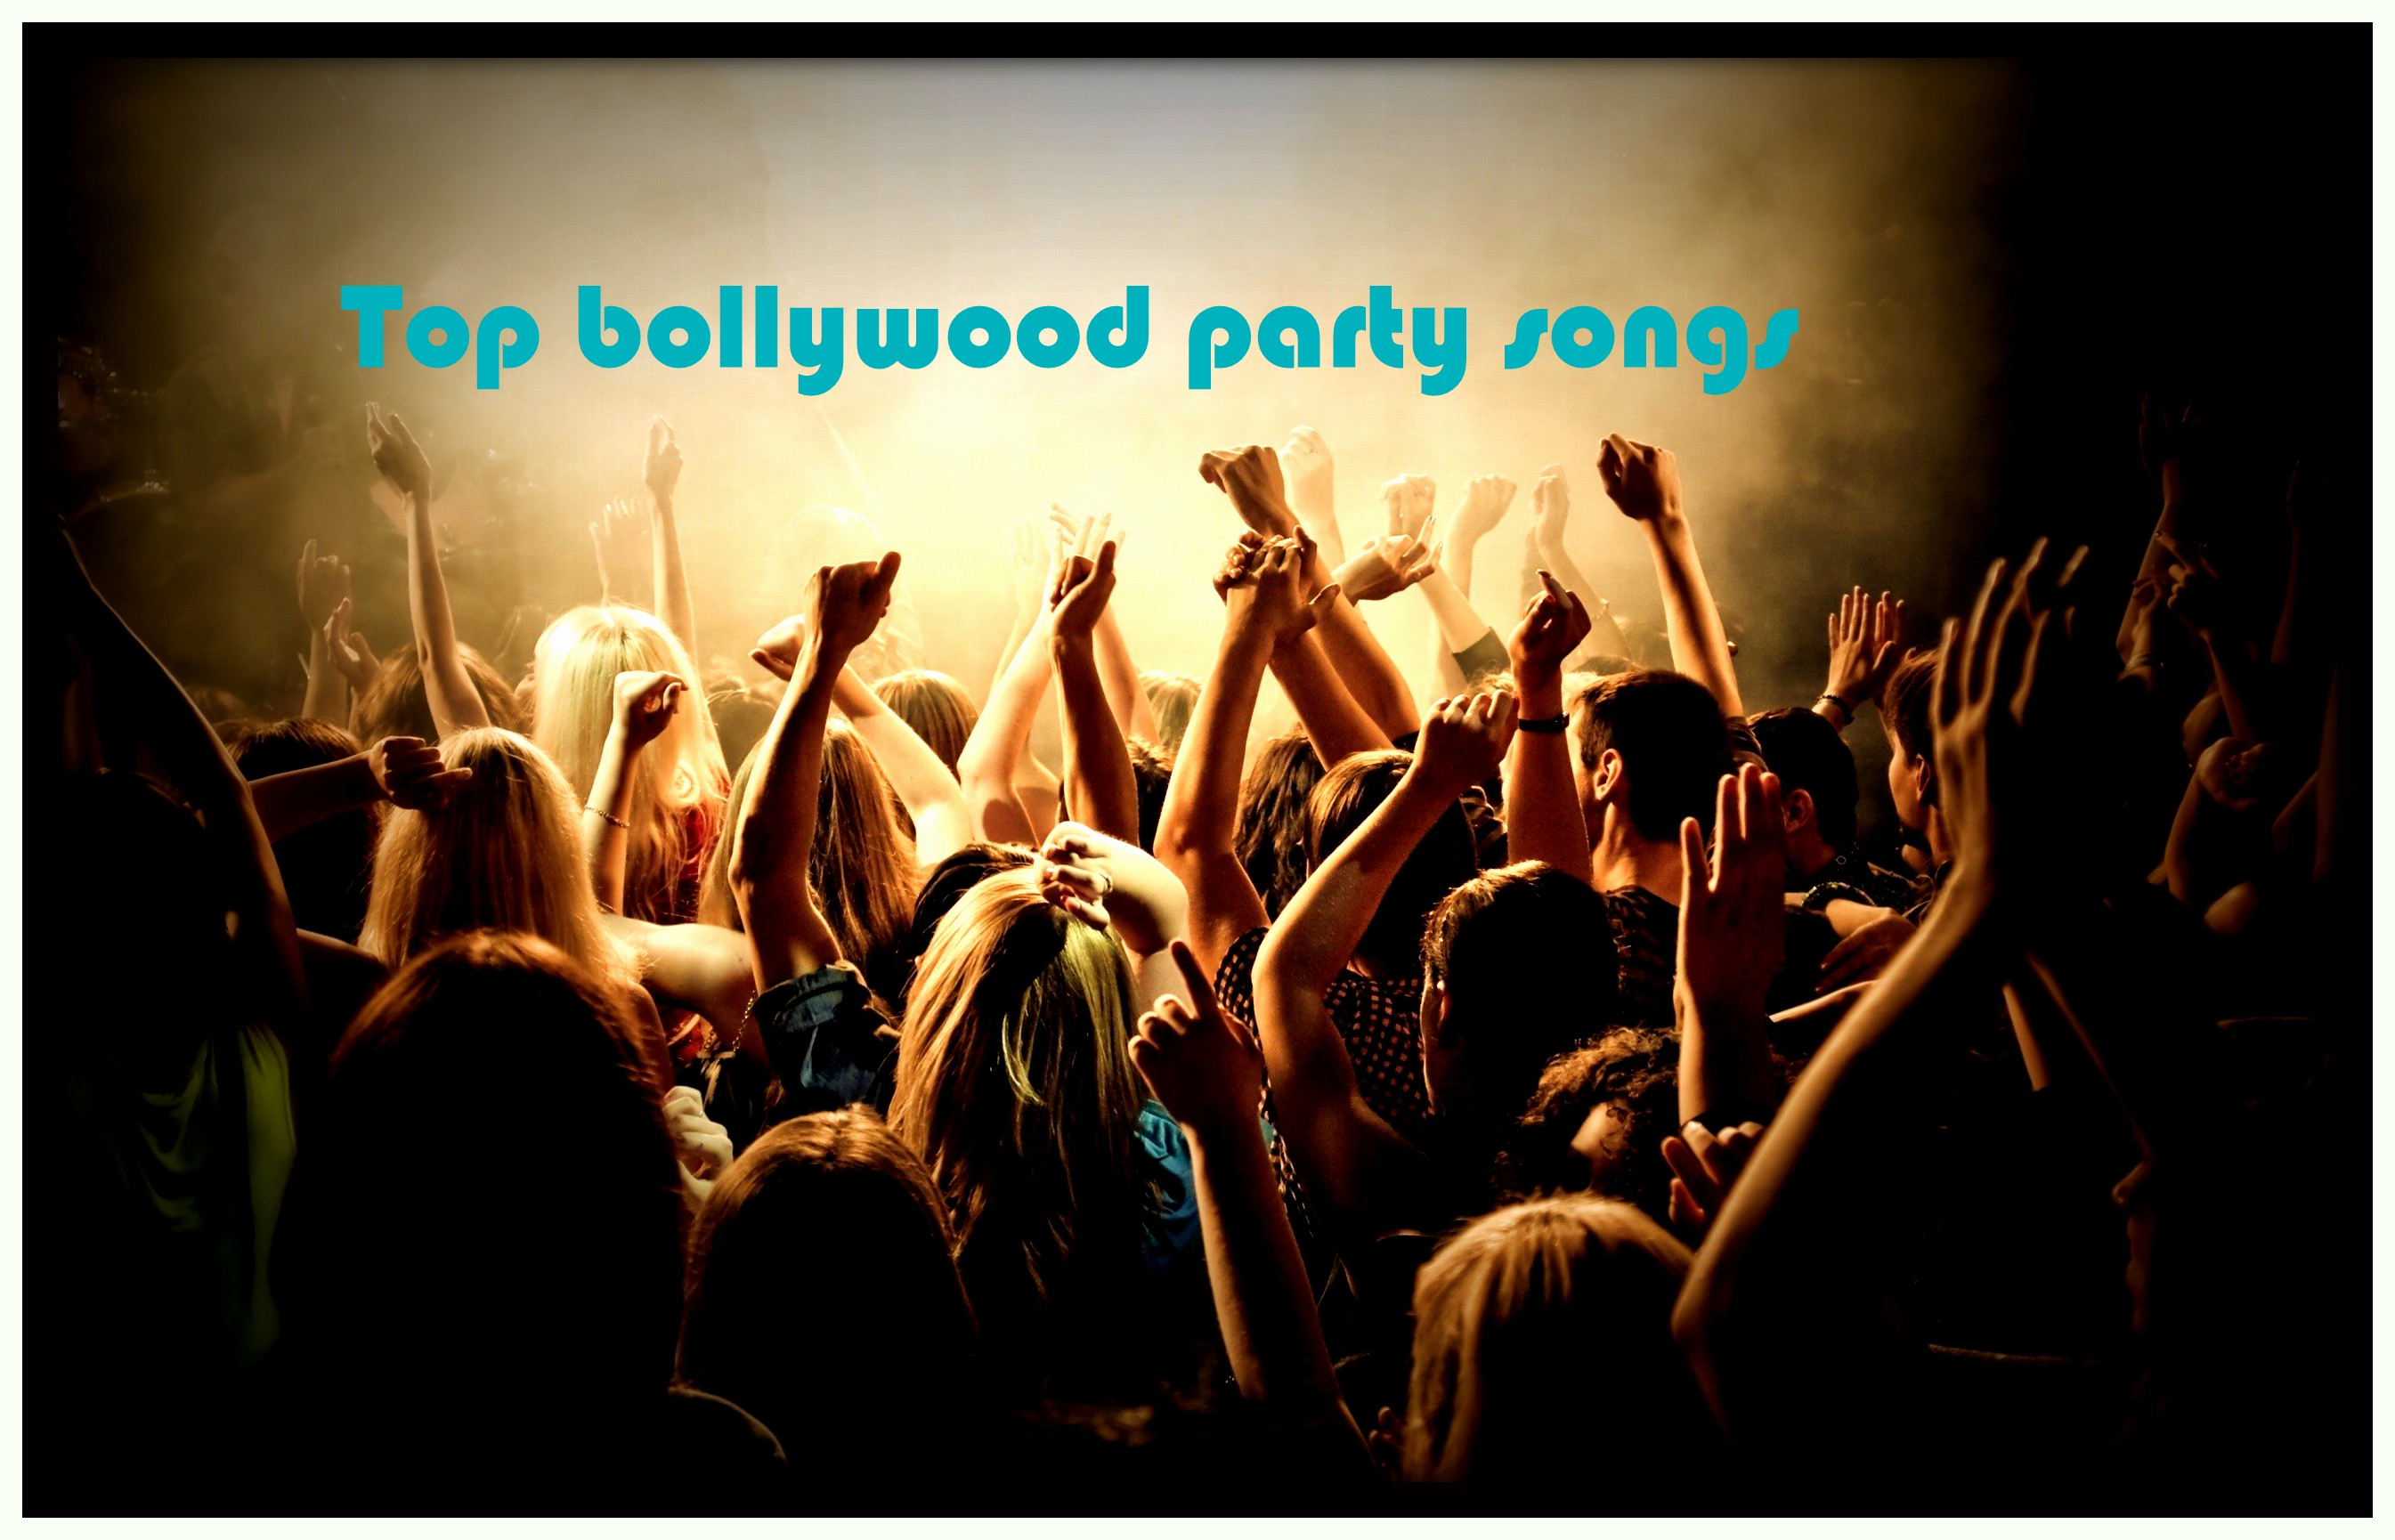 Top bollywood party songs